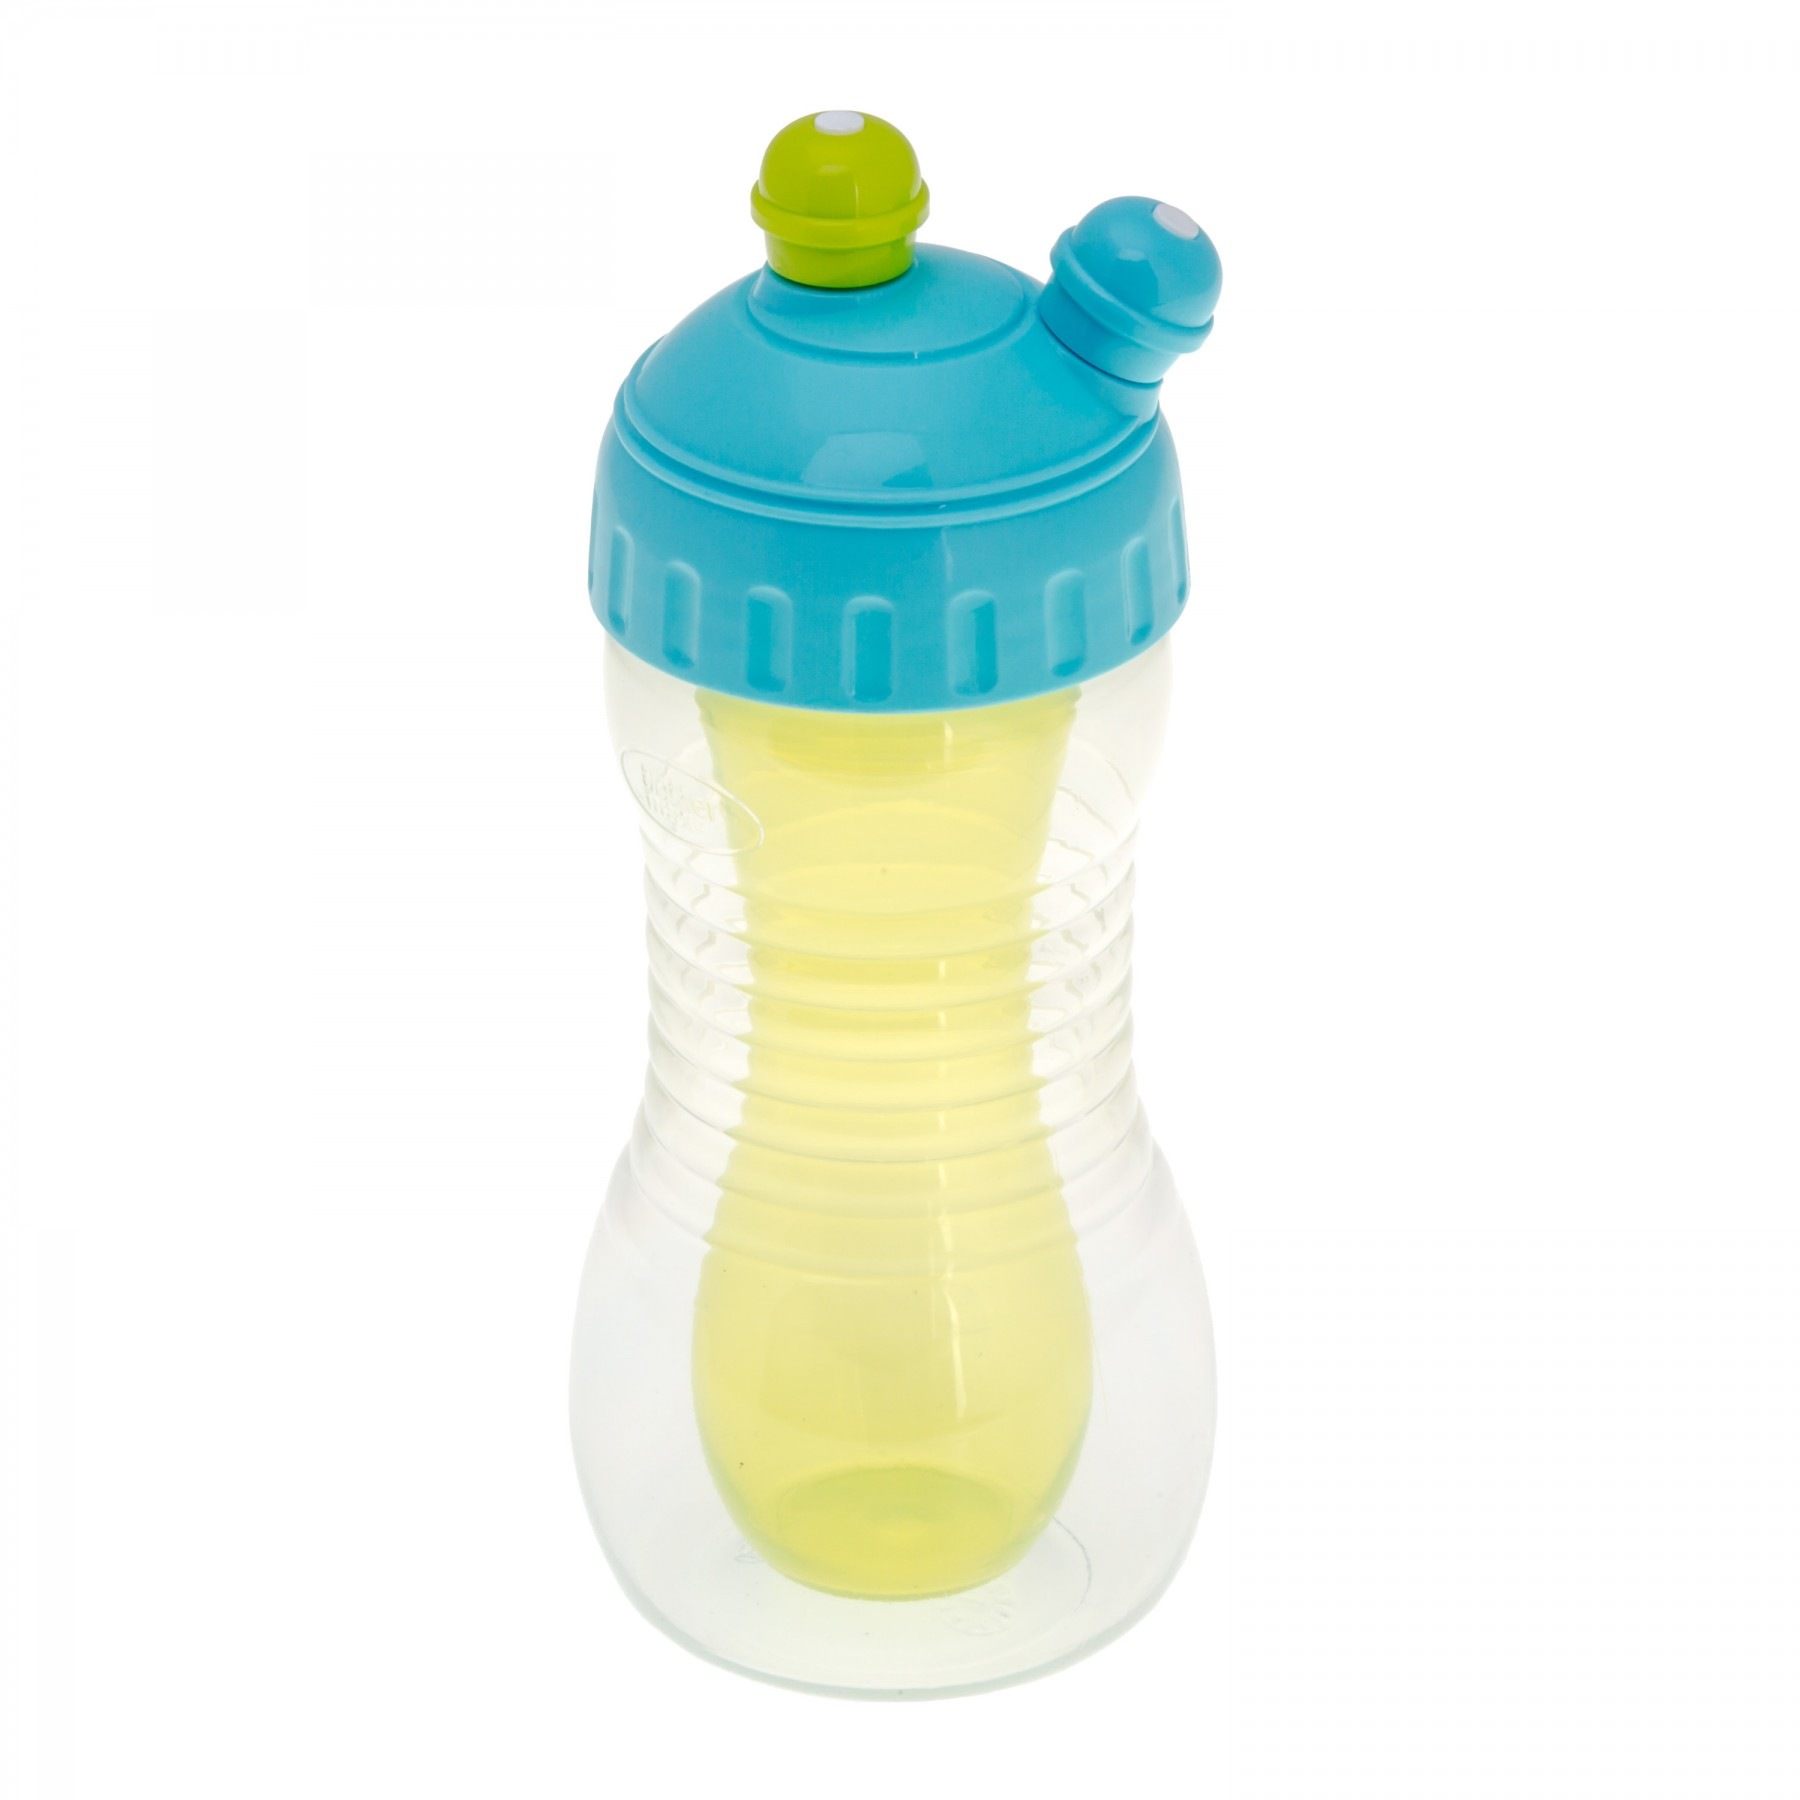 Brother Max – 2 Drinks Cooler Sports Bottle – Blue/Green